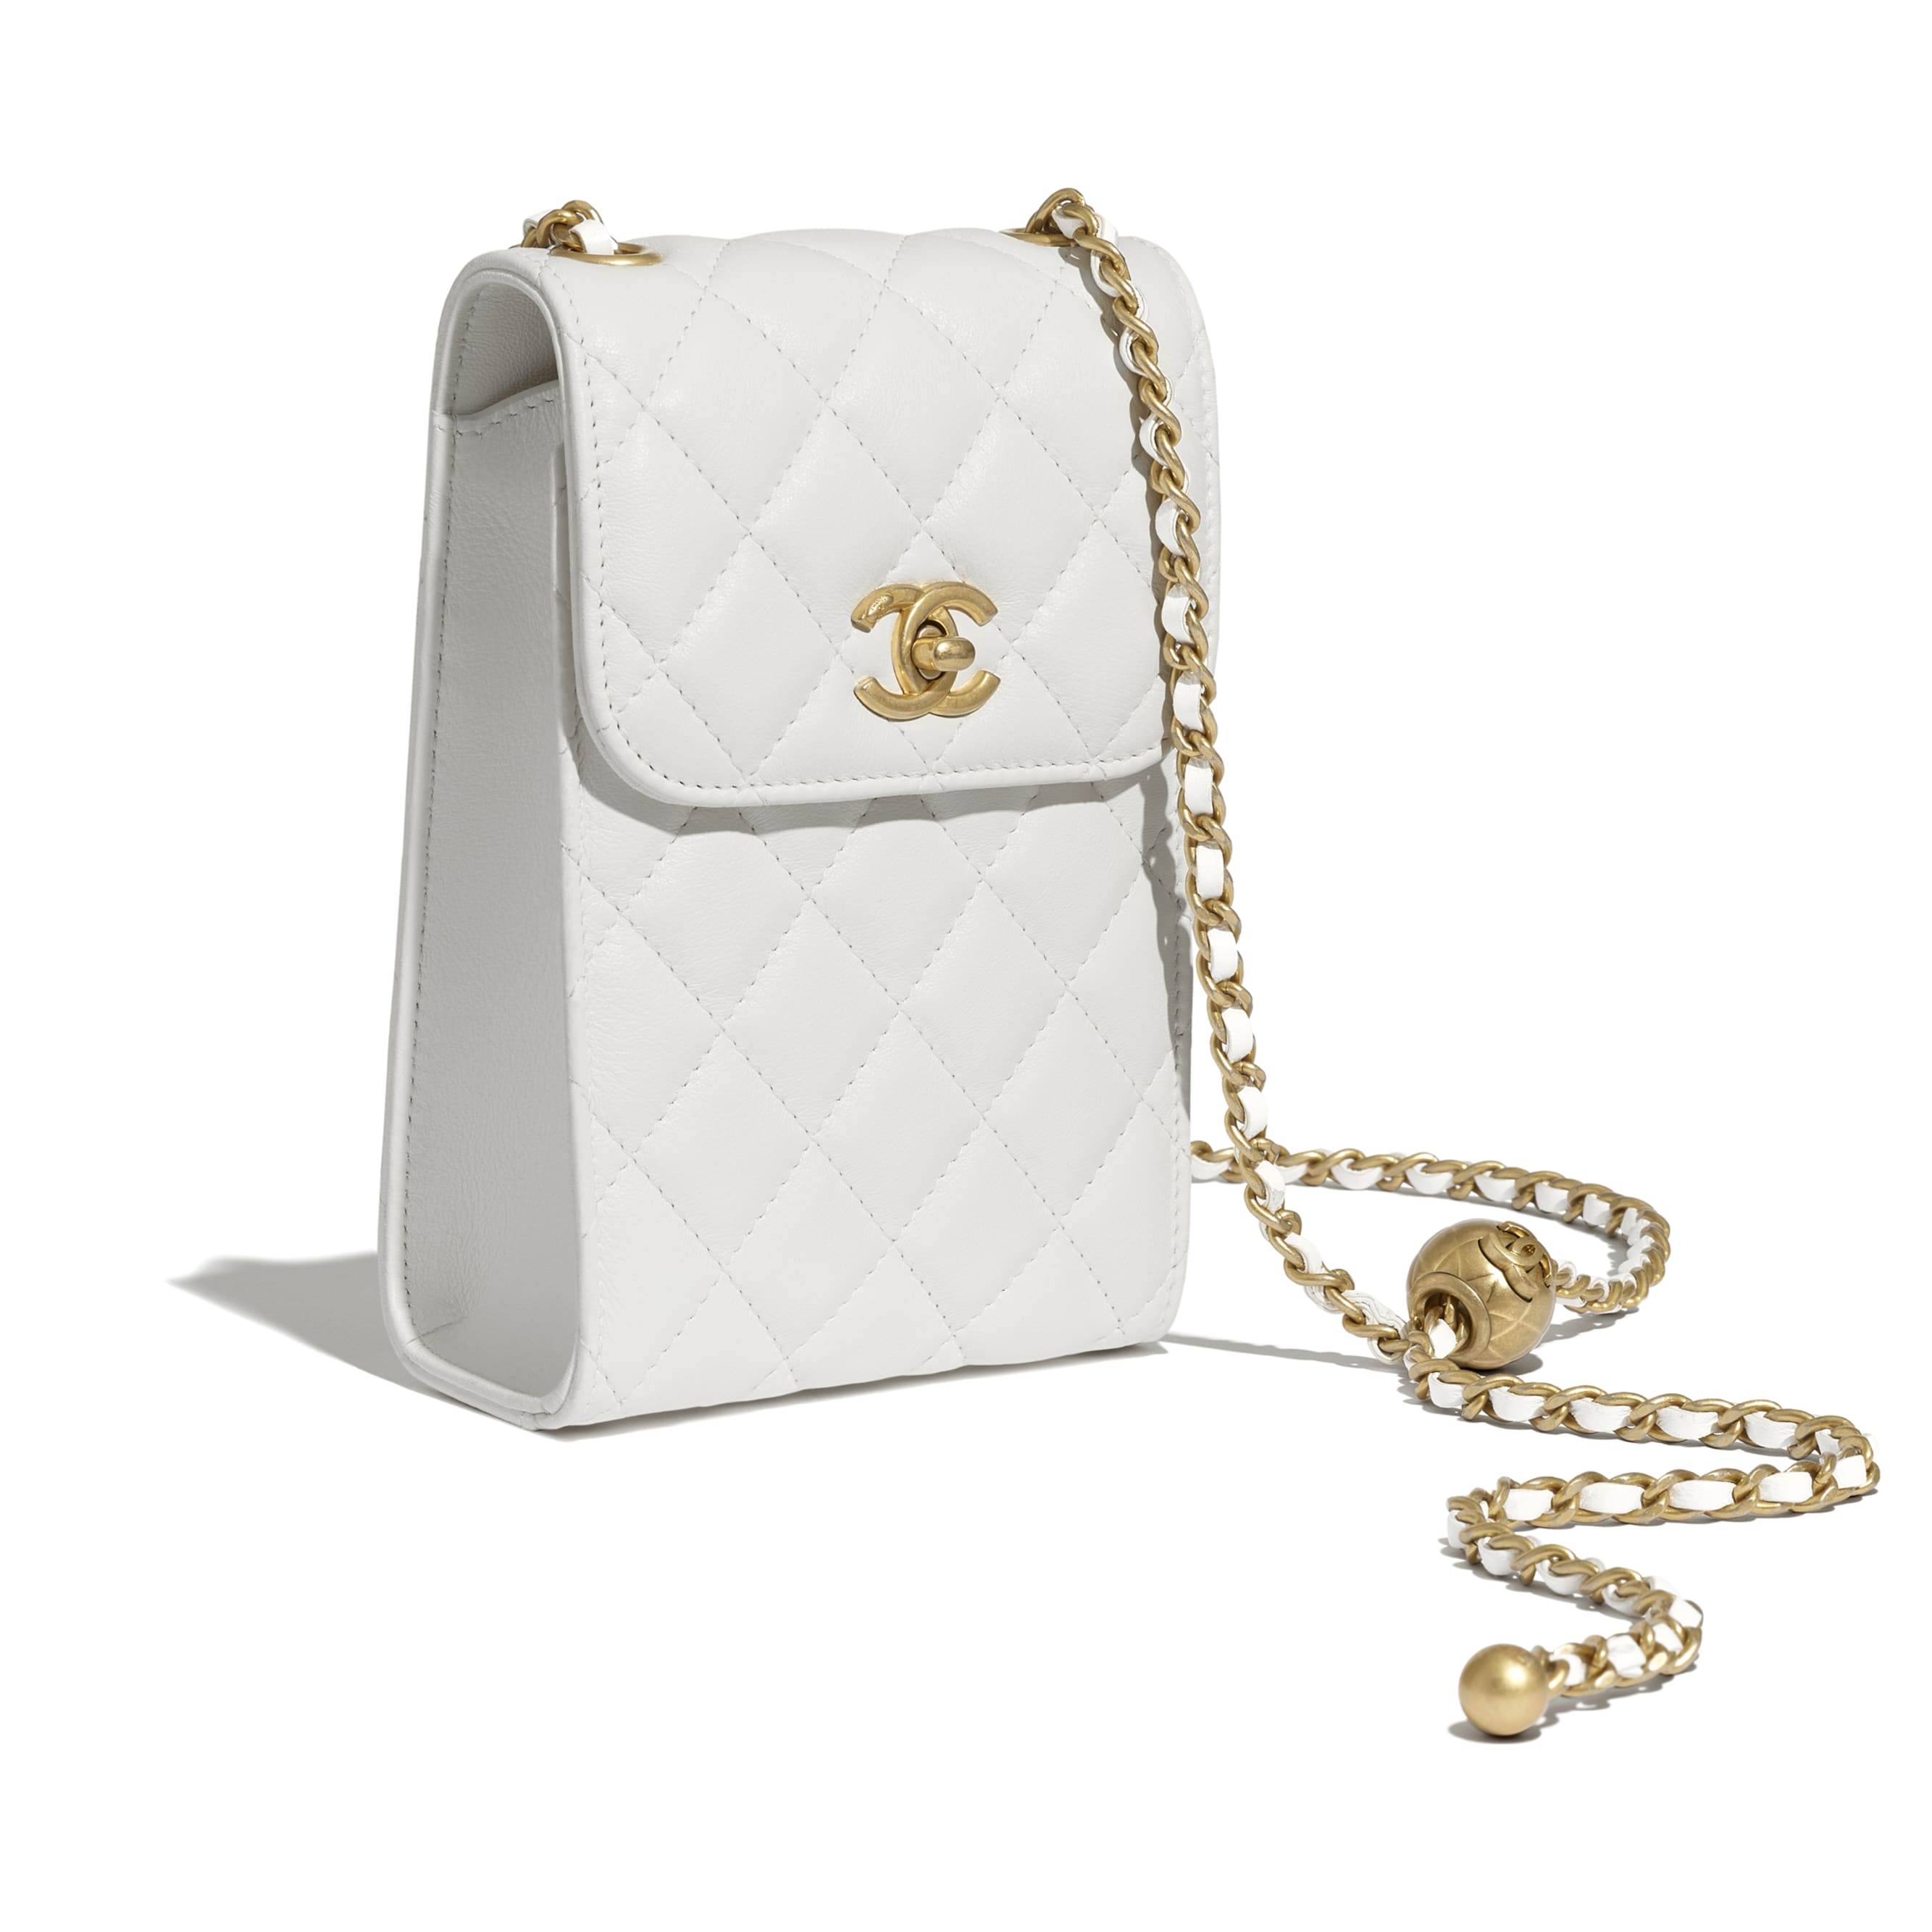 Phone Holder With Chain - White - Lambskin - CHANEL - Extra view - see standard sized version